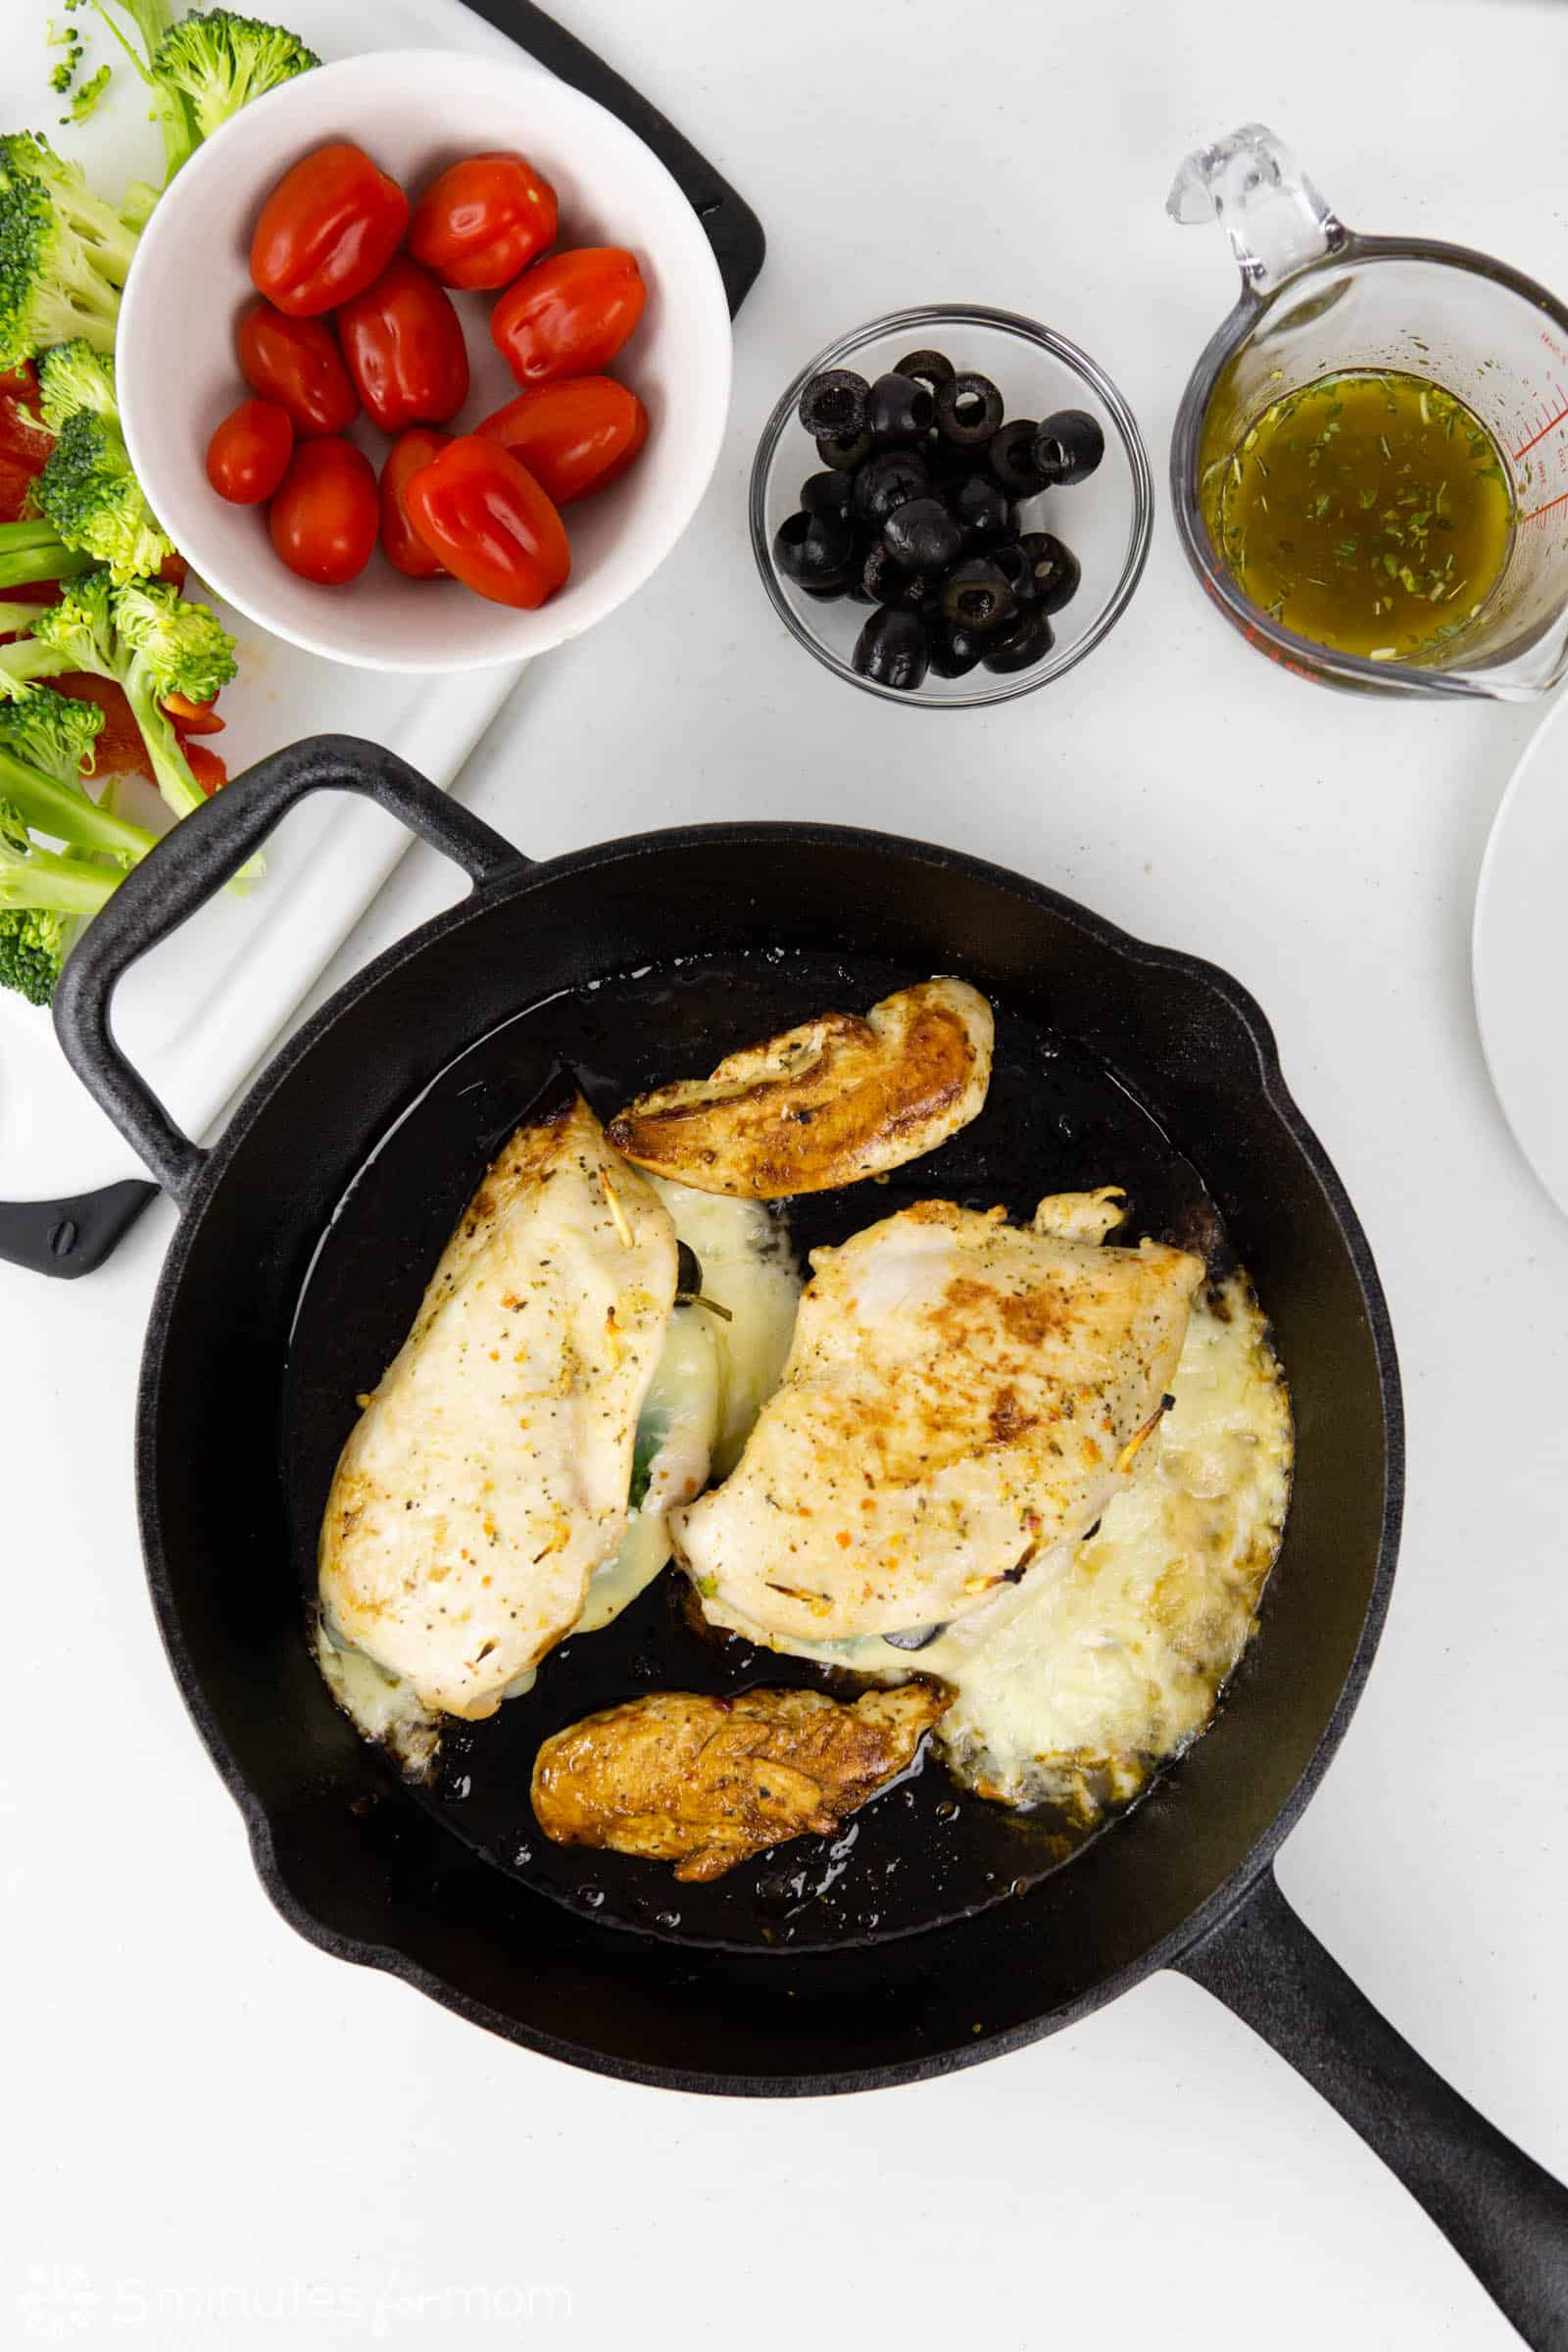 remove fillets after cooking for 10 minutes and add vegetables to pan